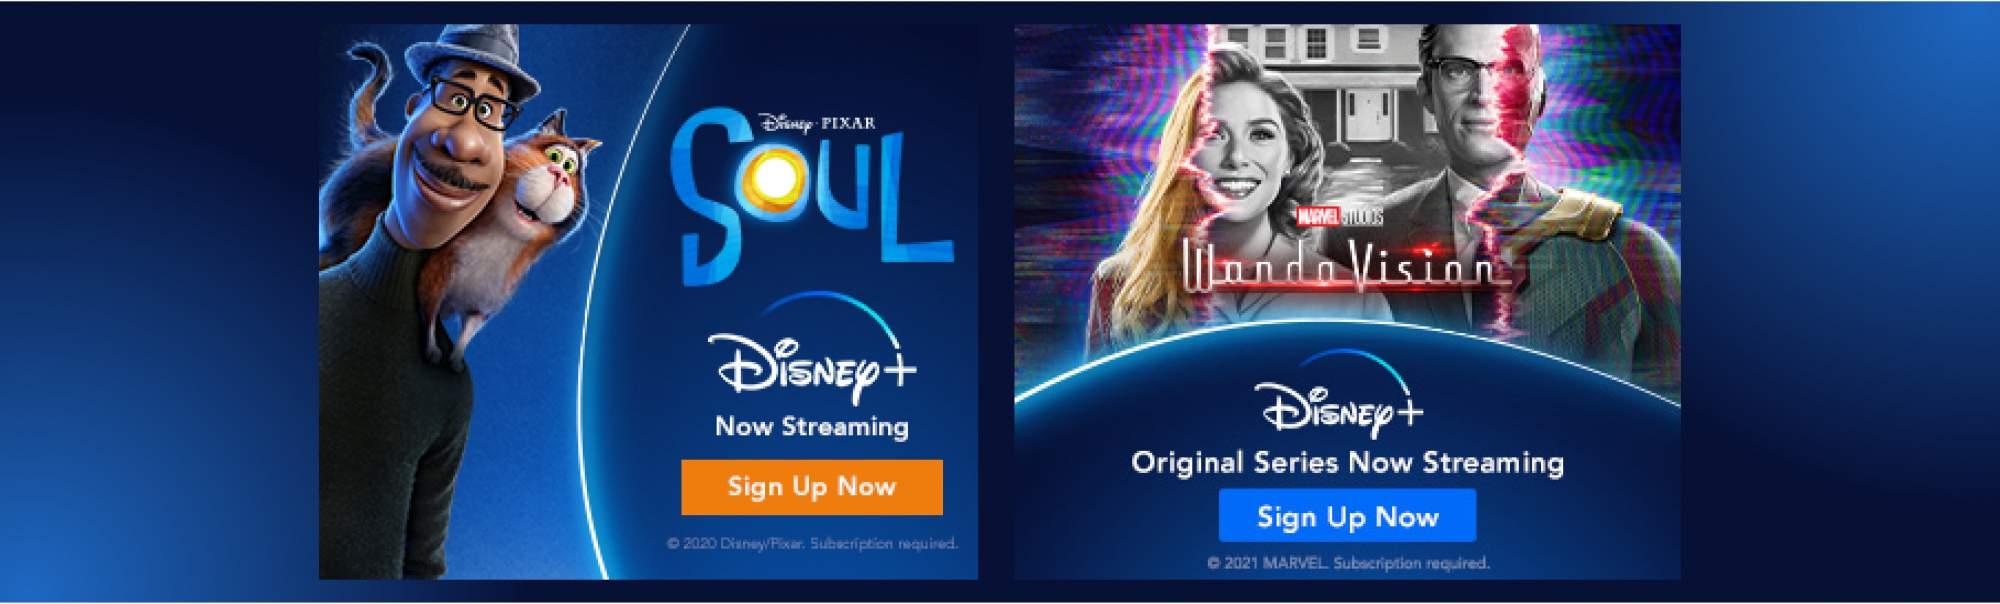 Family & Lifestyle Disney +  -  £5.99 a month or save over 15% on an annual subscription